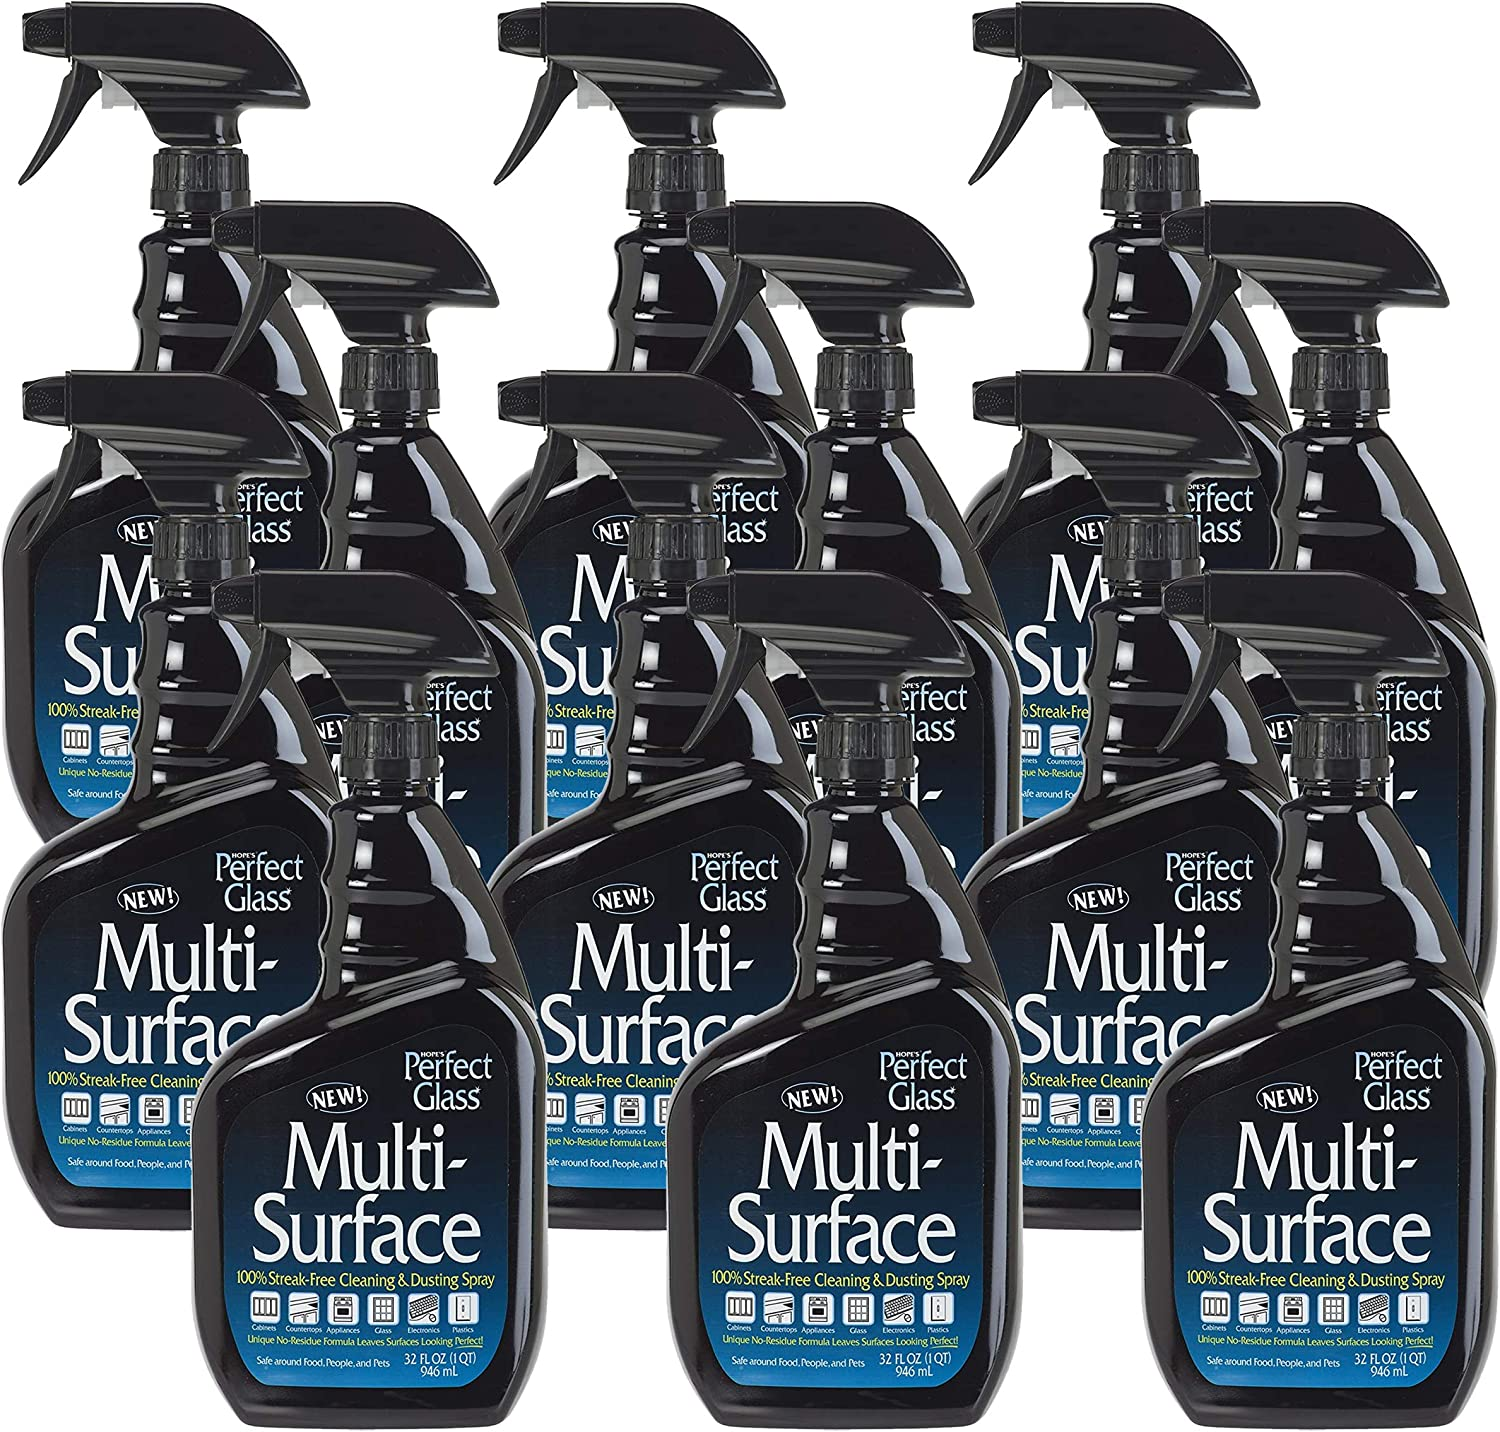 HOPE'S Perfect Glass Multi-Surface Purpose Household Spray, Kitchen Countertop Degreaser, Bathroom Shower and Sink Cleaner, Pack of 12, Streak Free, 12 Pack